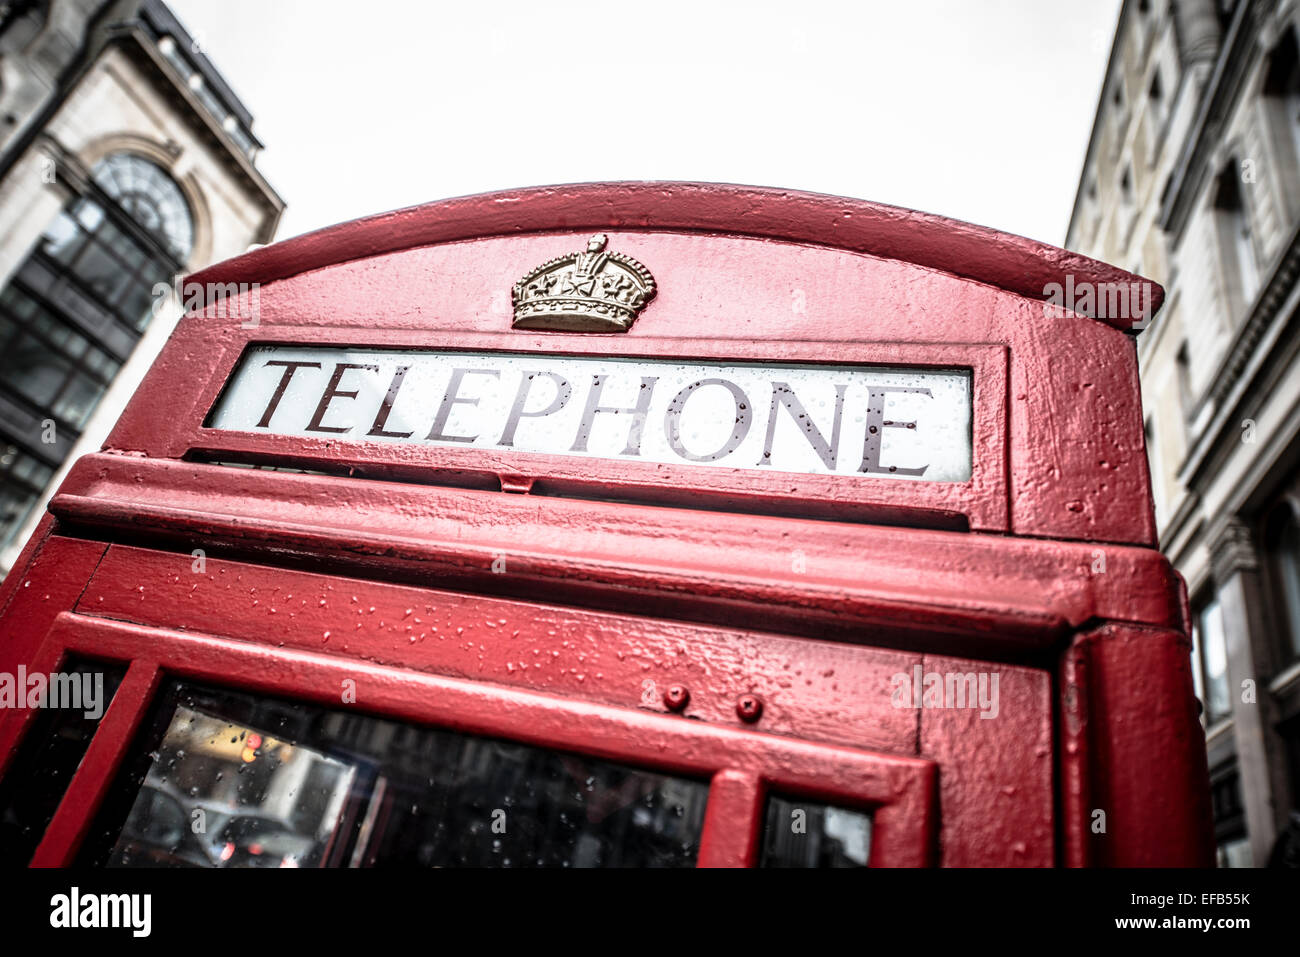 Red telephone box, London - Stock Image